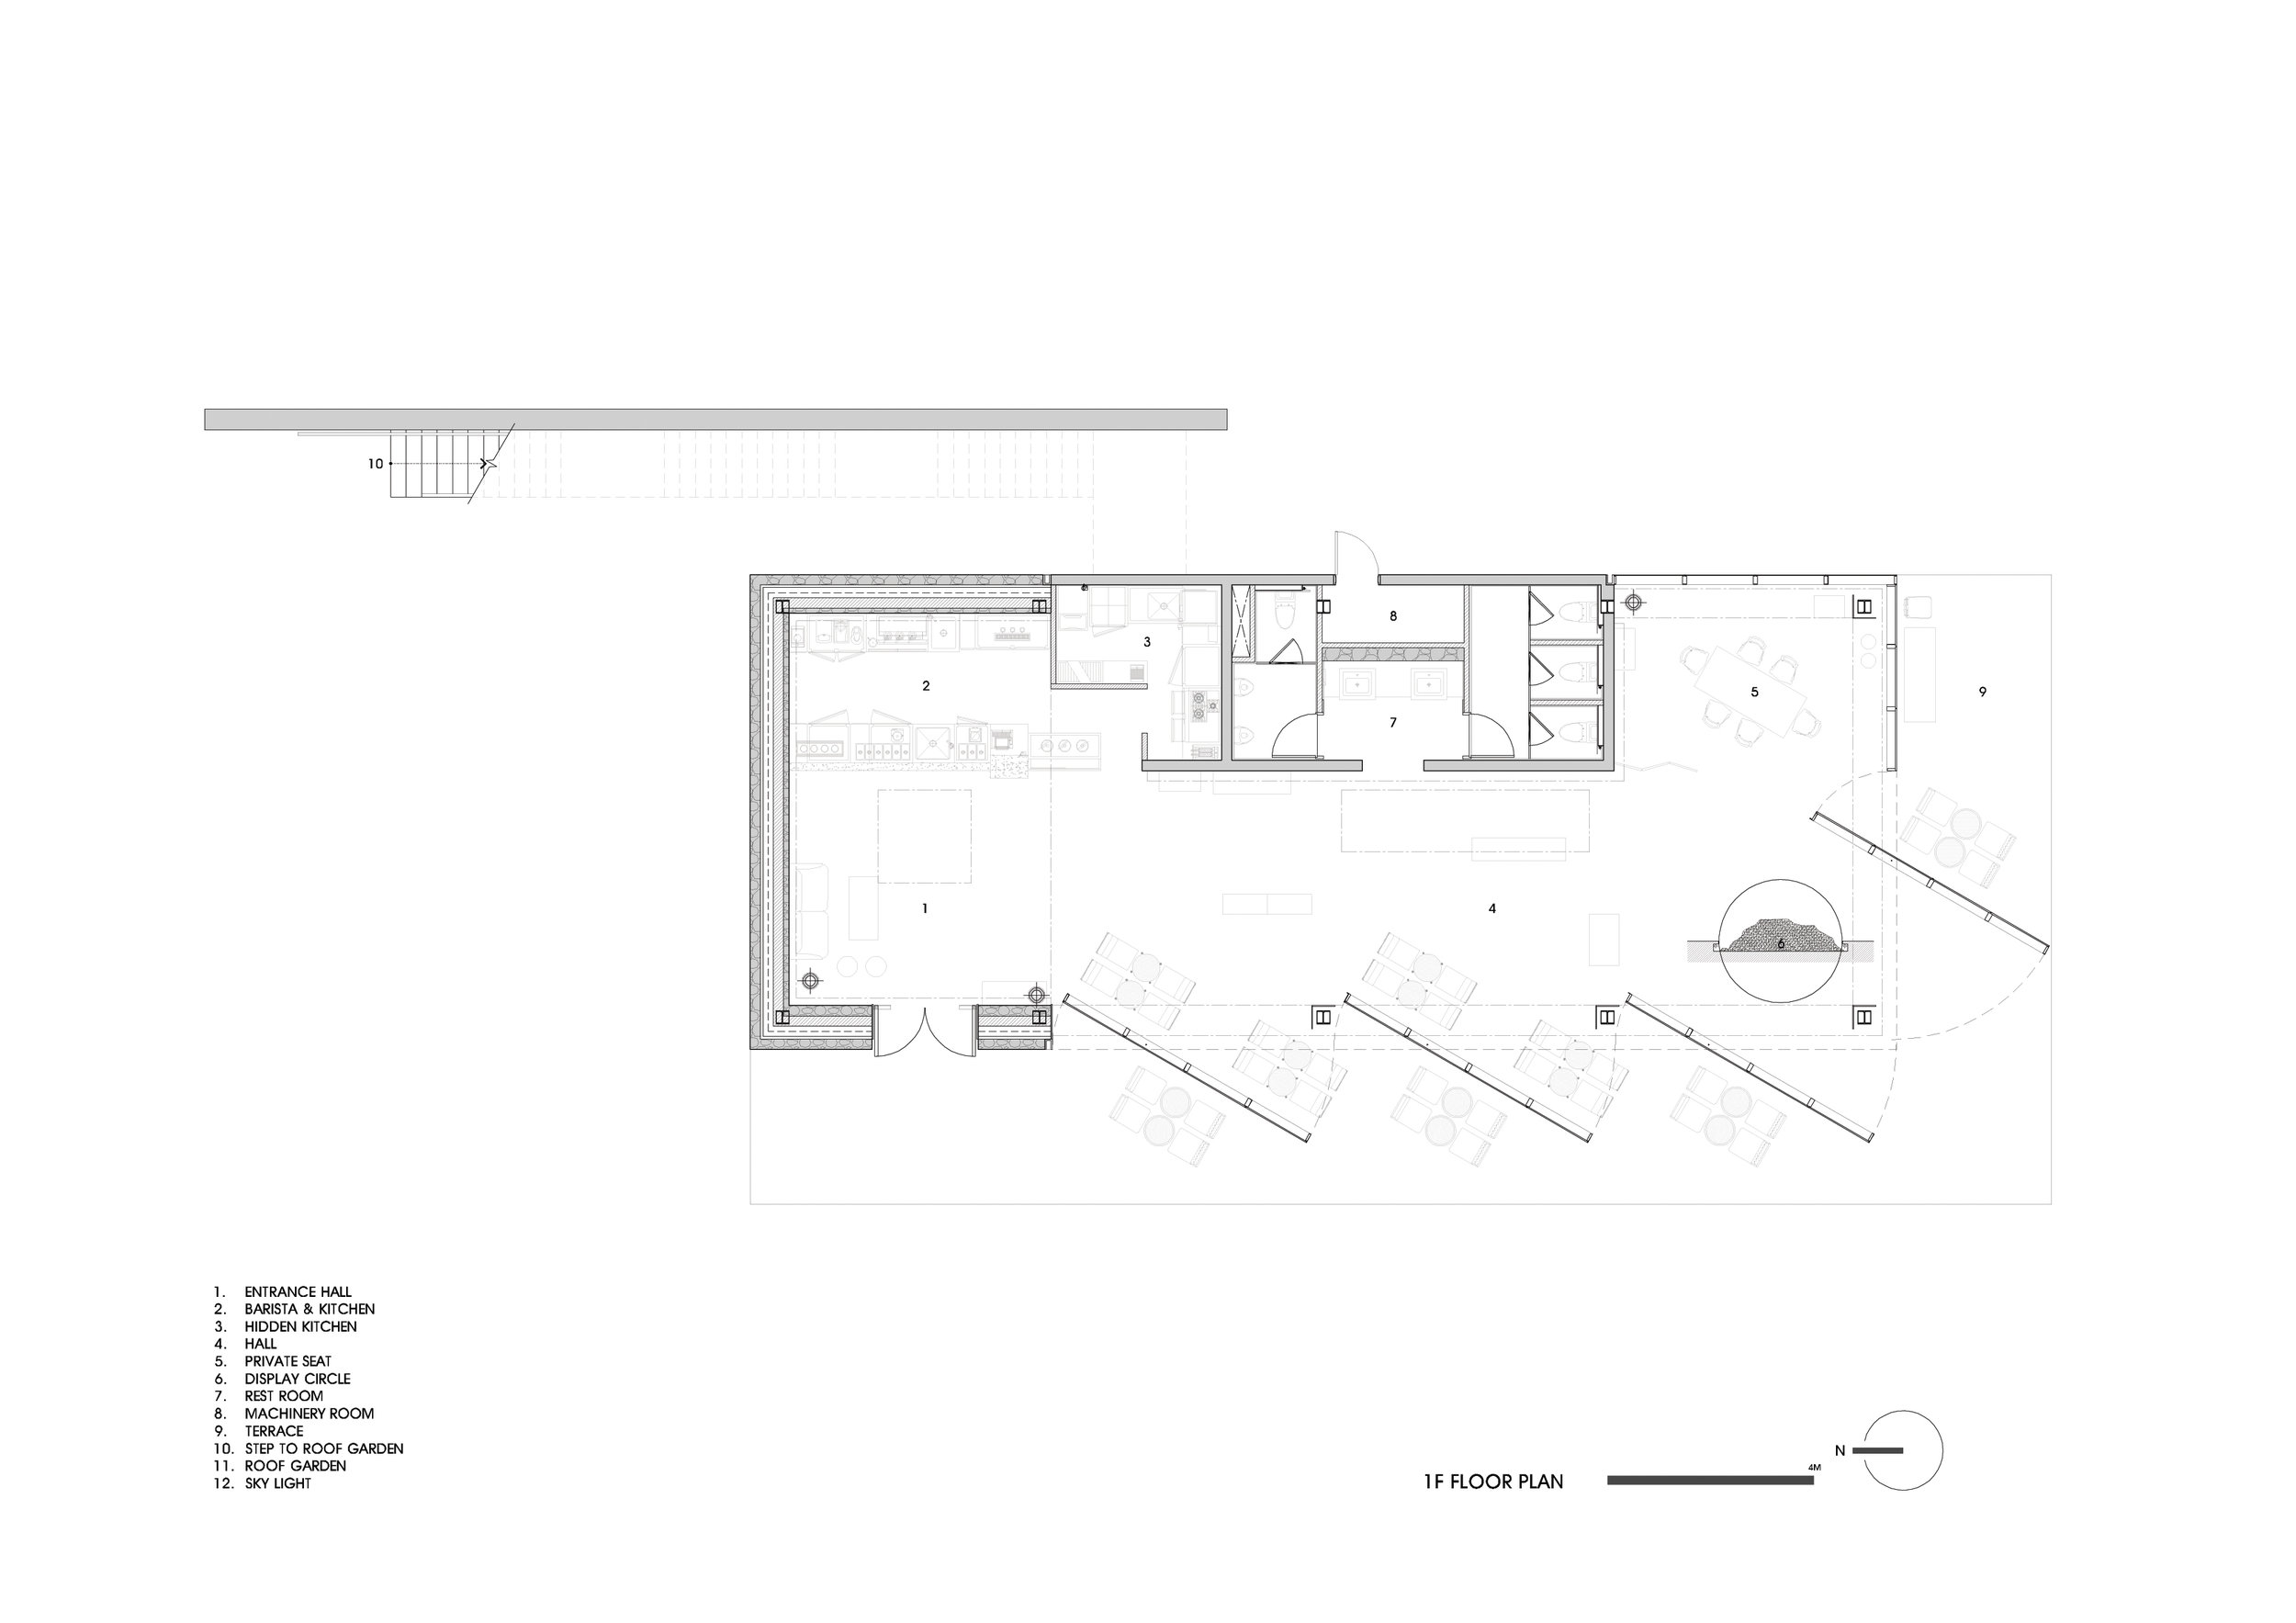 02 FLOORPLAN copy.jpg